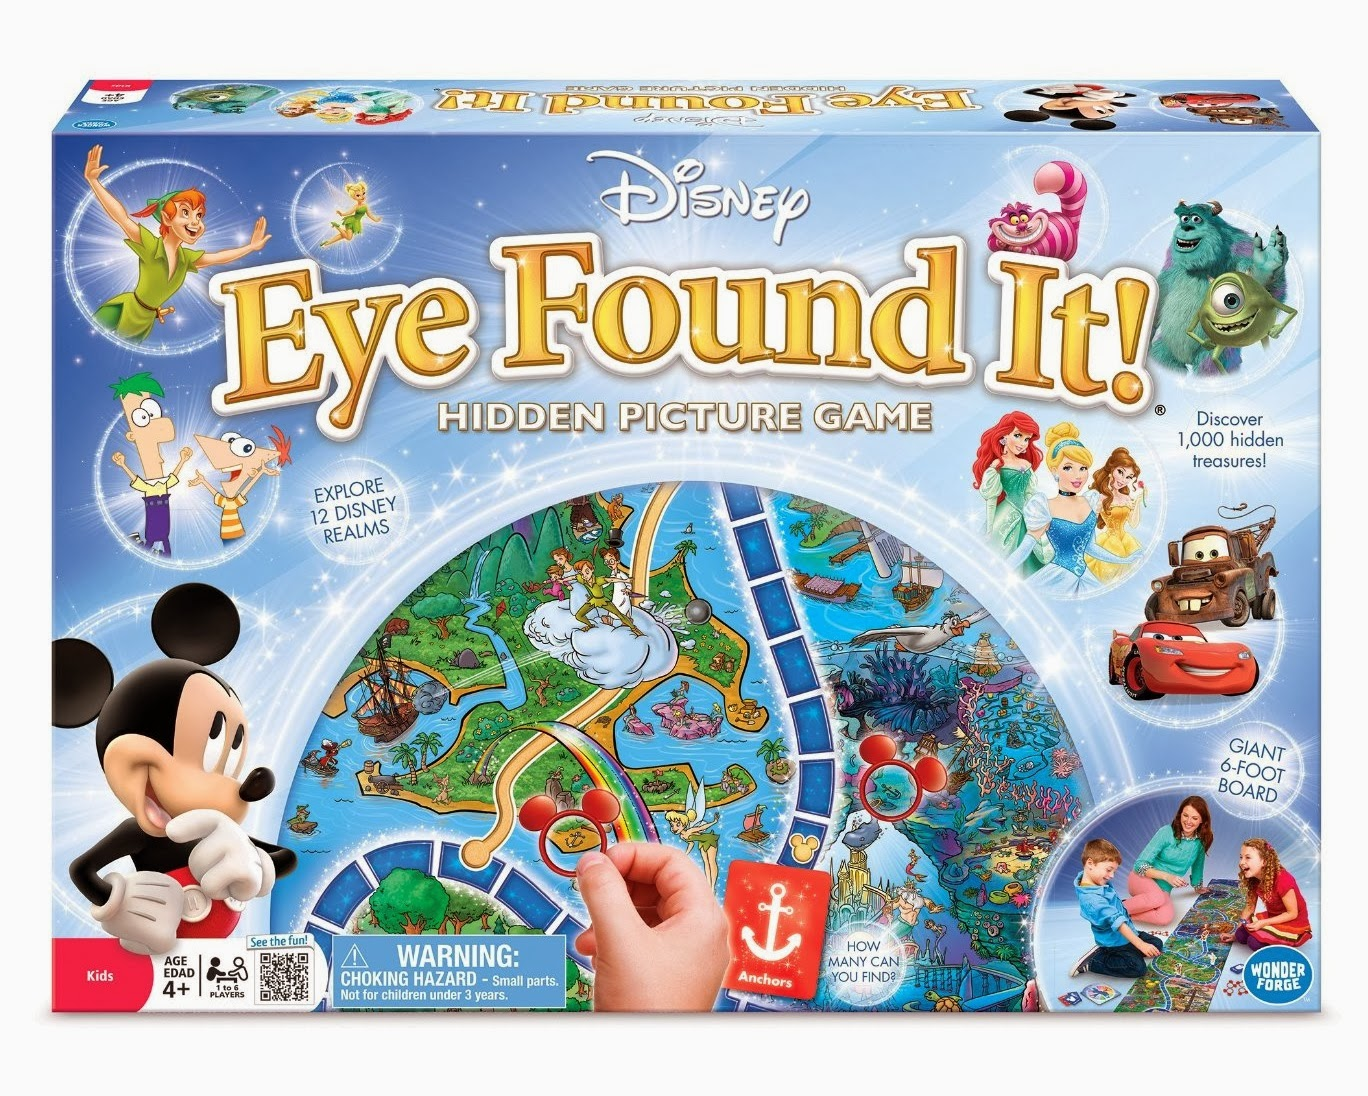 Disney Eye Found It Game Giveaway